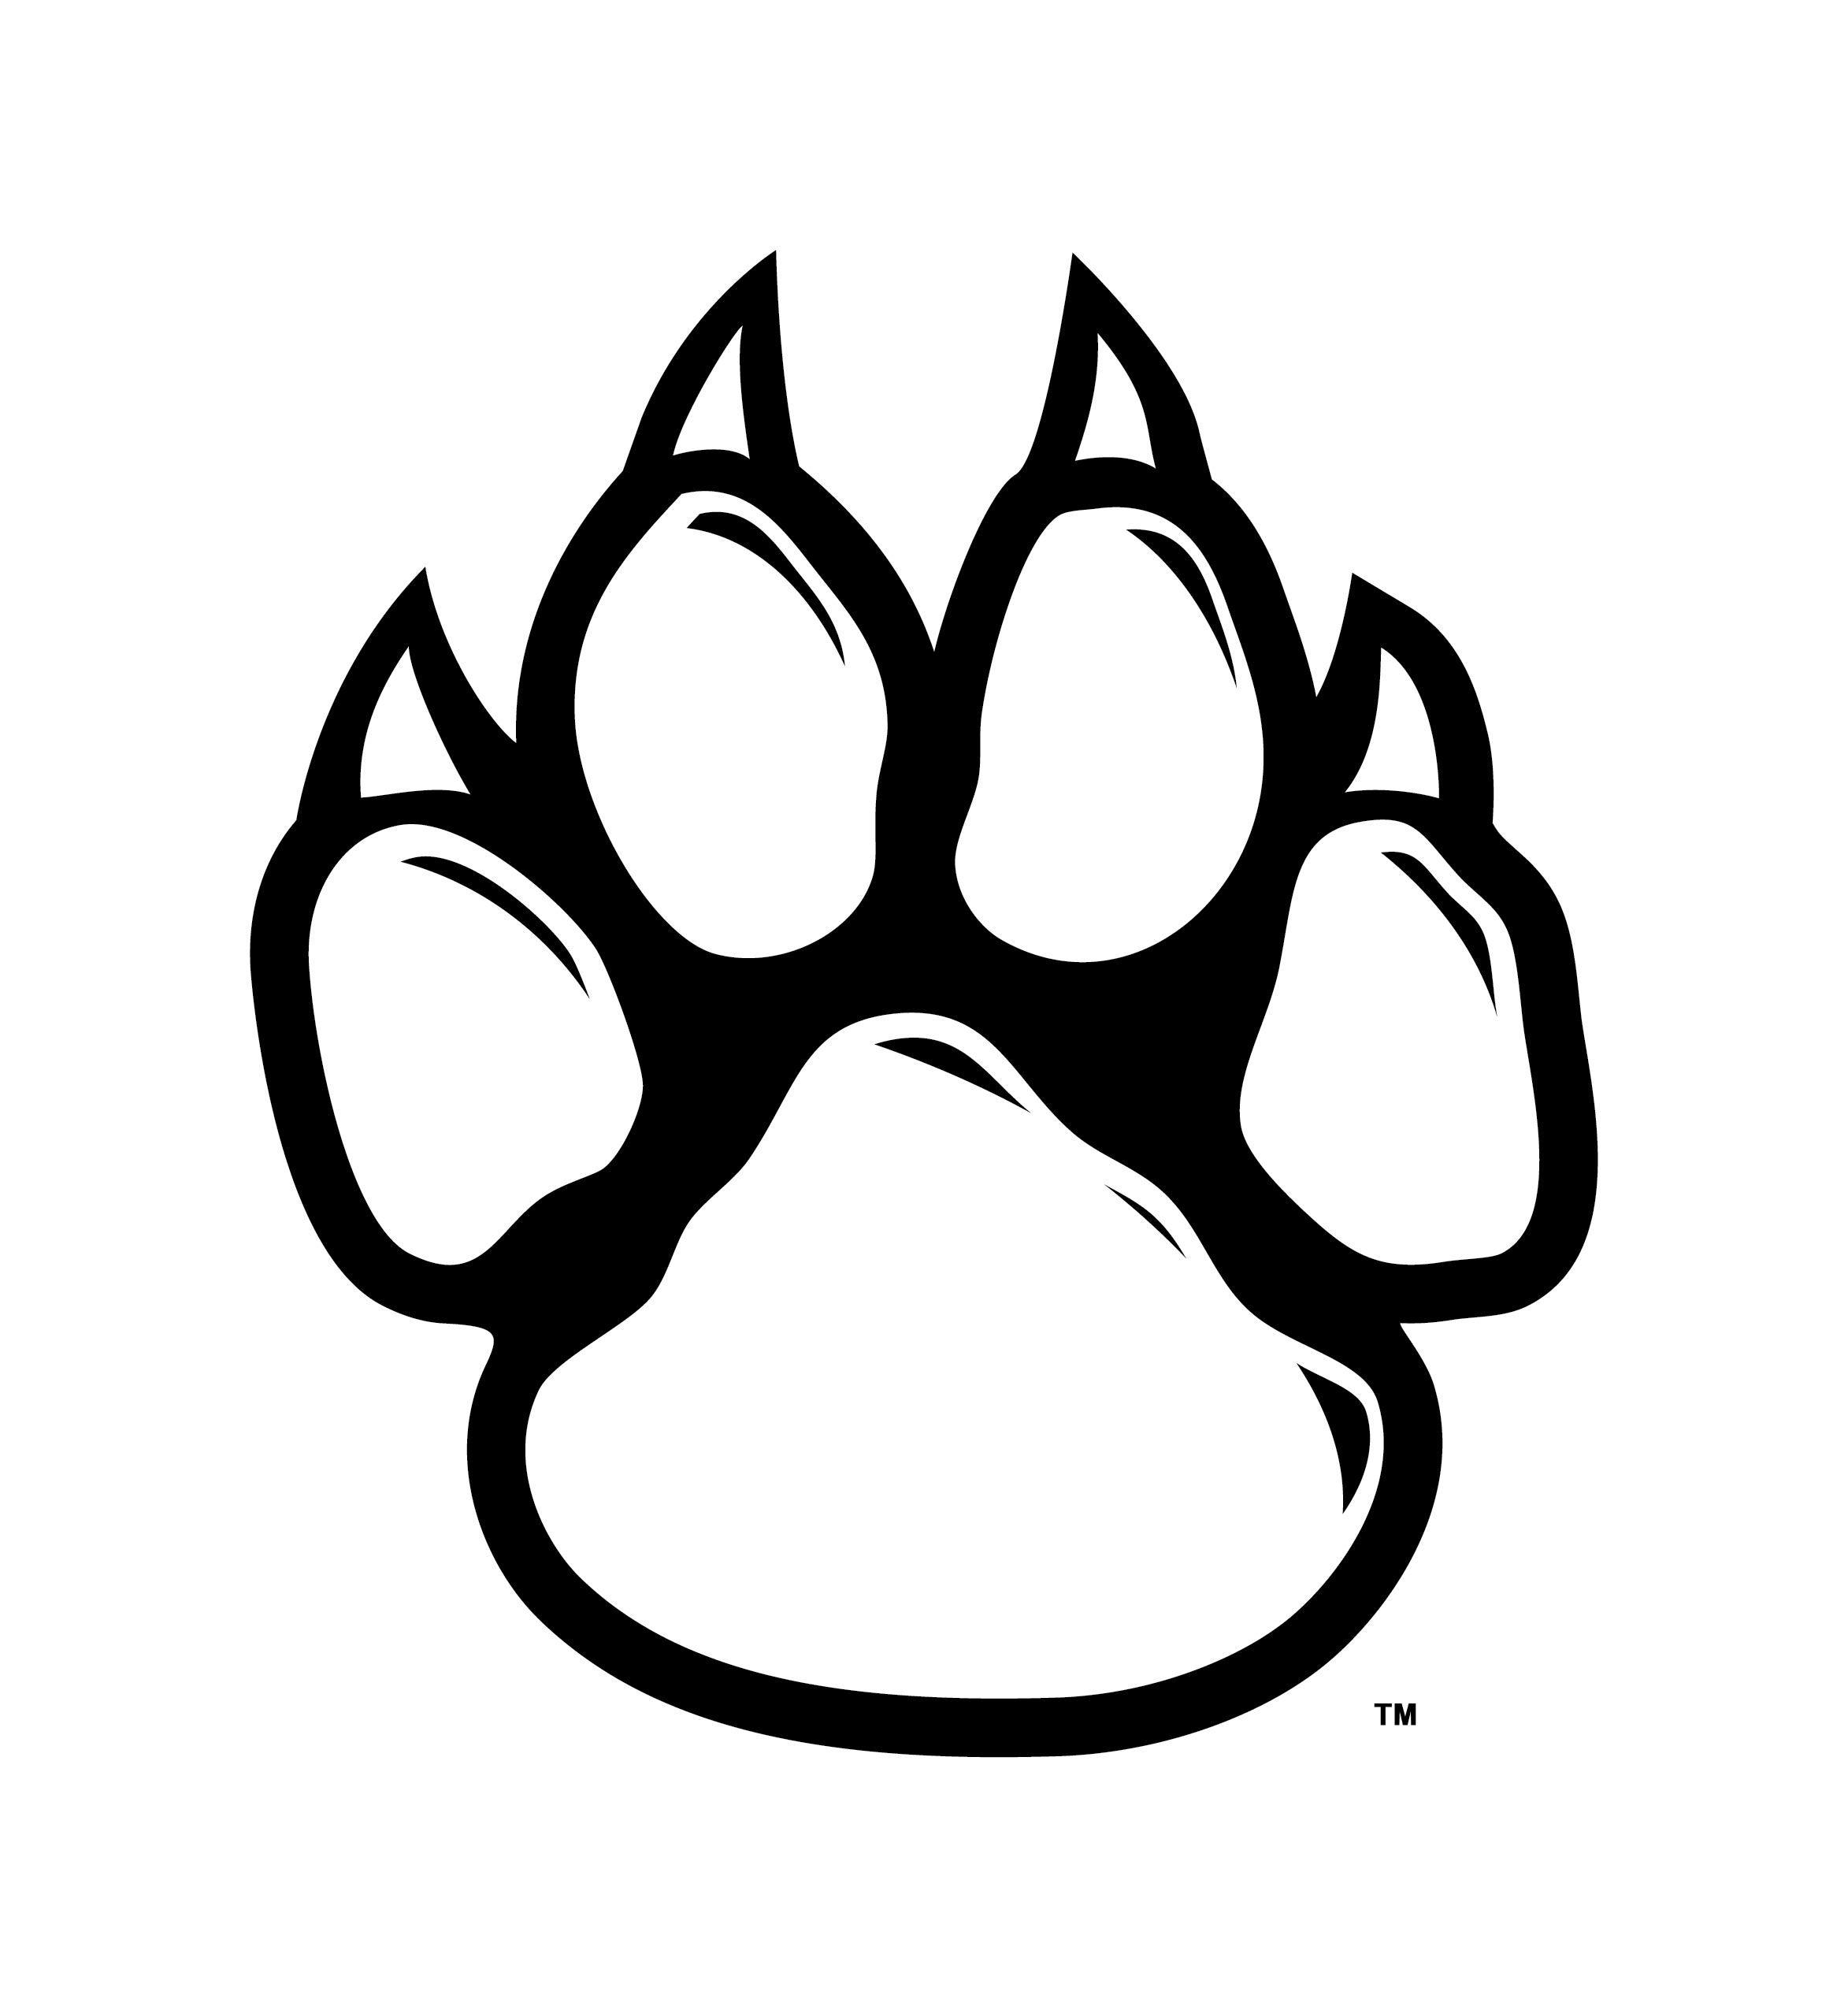 12 Paw Print Drawings Free Cliparts That You Can Download To You